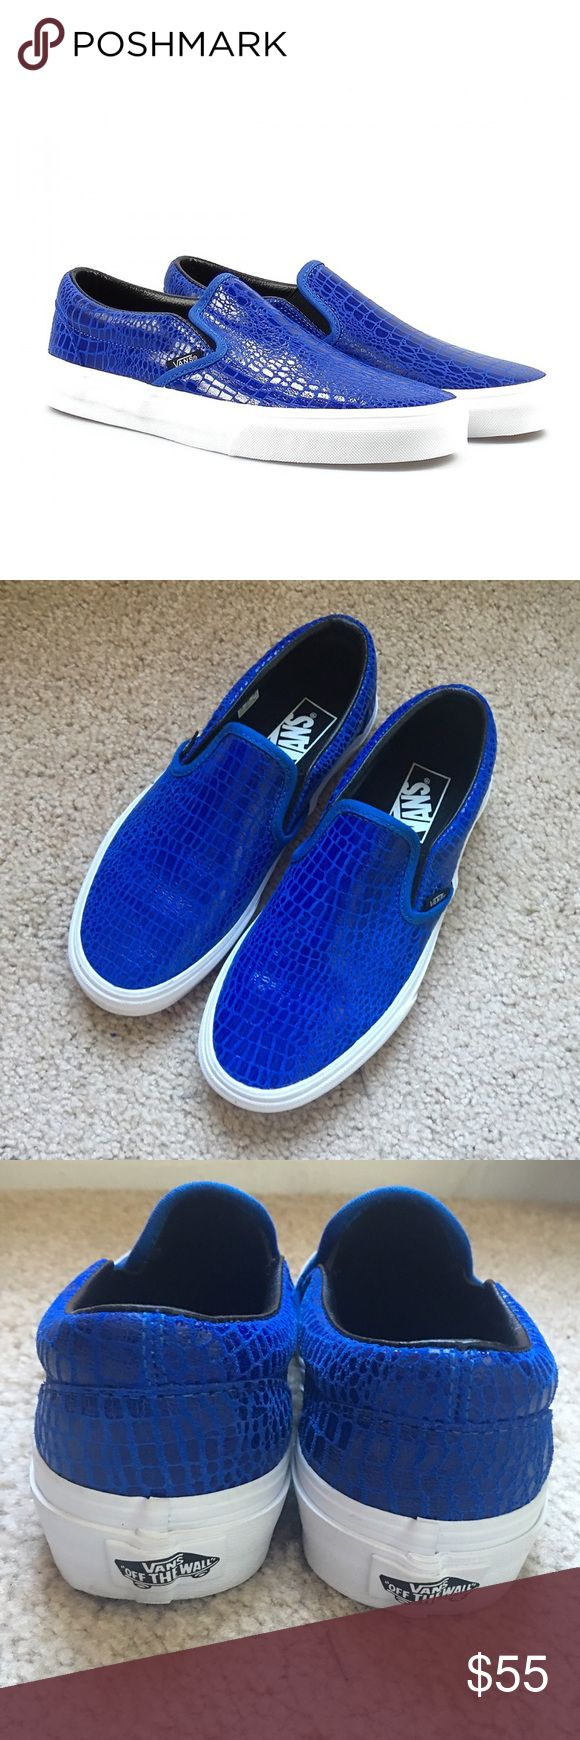 VANS royal blue leather sz: 7 Worn once, brand new condition Vans sz: 7 women's. I do not have the box. Royal blue snakeskin print all leather. These are absolutely gorgeous! Price is FIRM! Please do not ask me to trade, as you will be ignored! Vans Shoes Sneakers